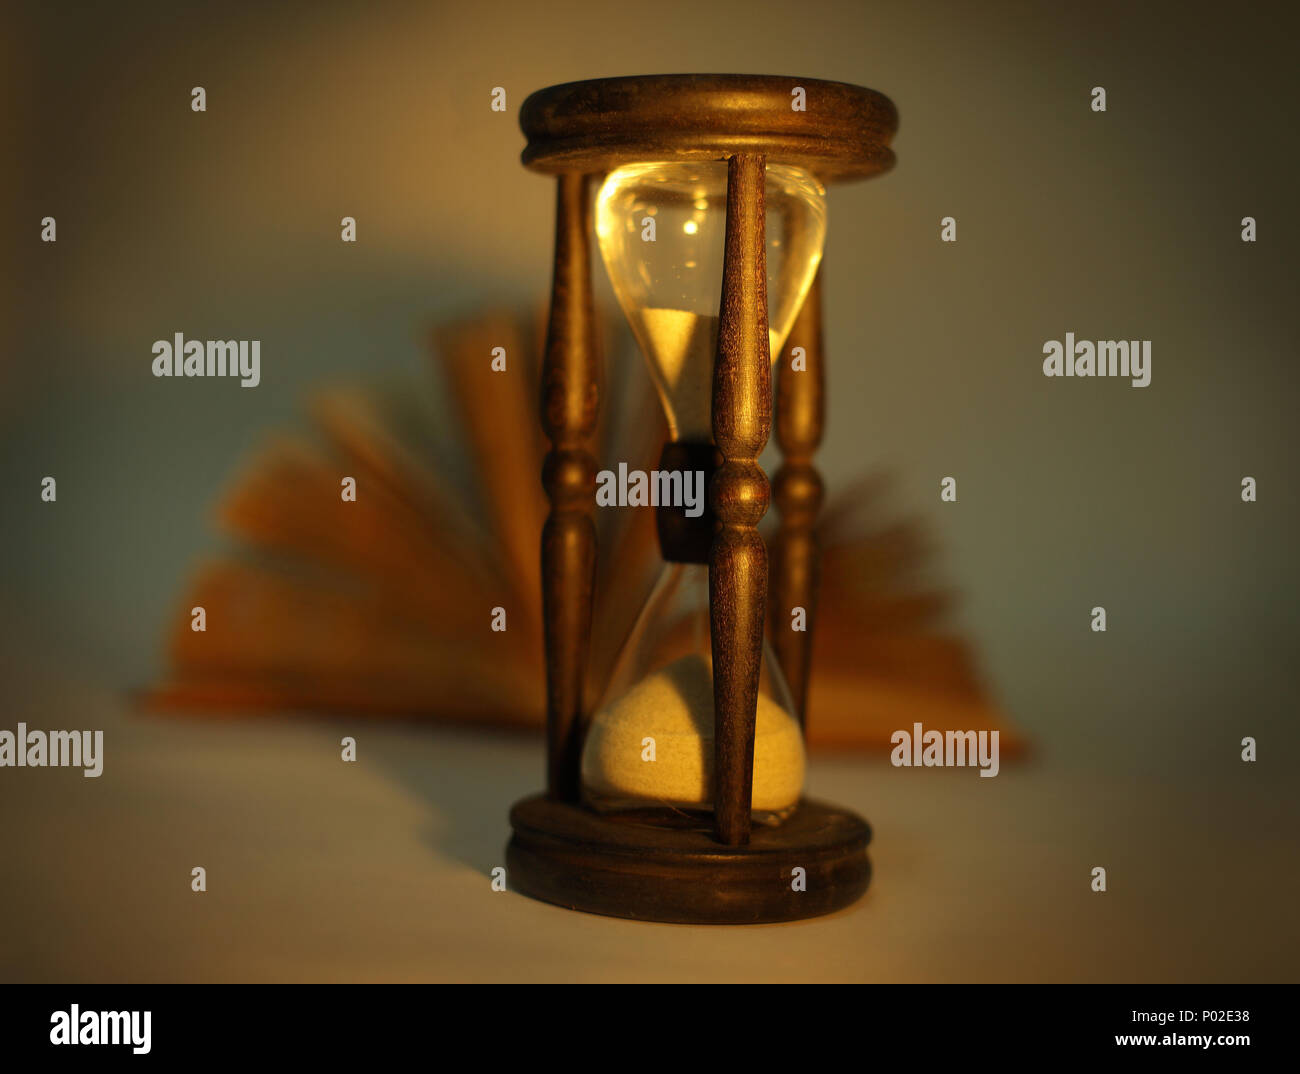 Sand glass clock with book - Stock Image